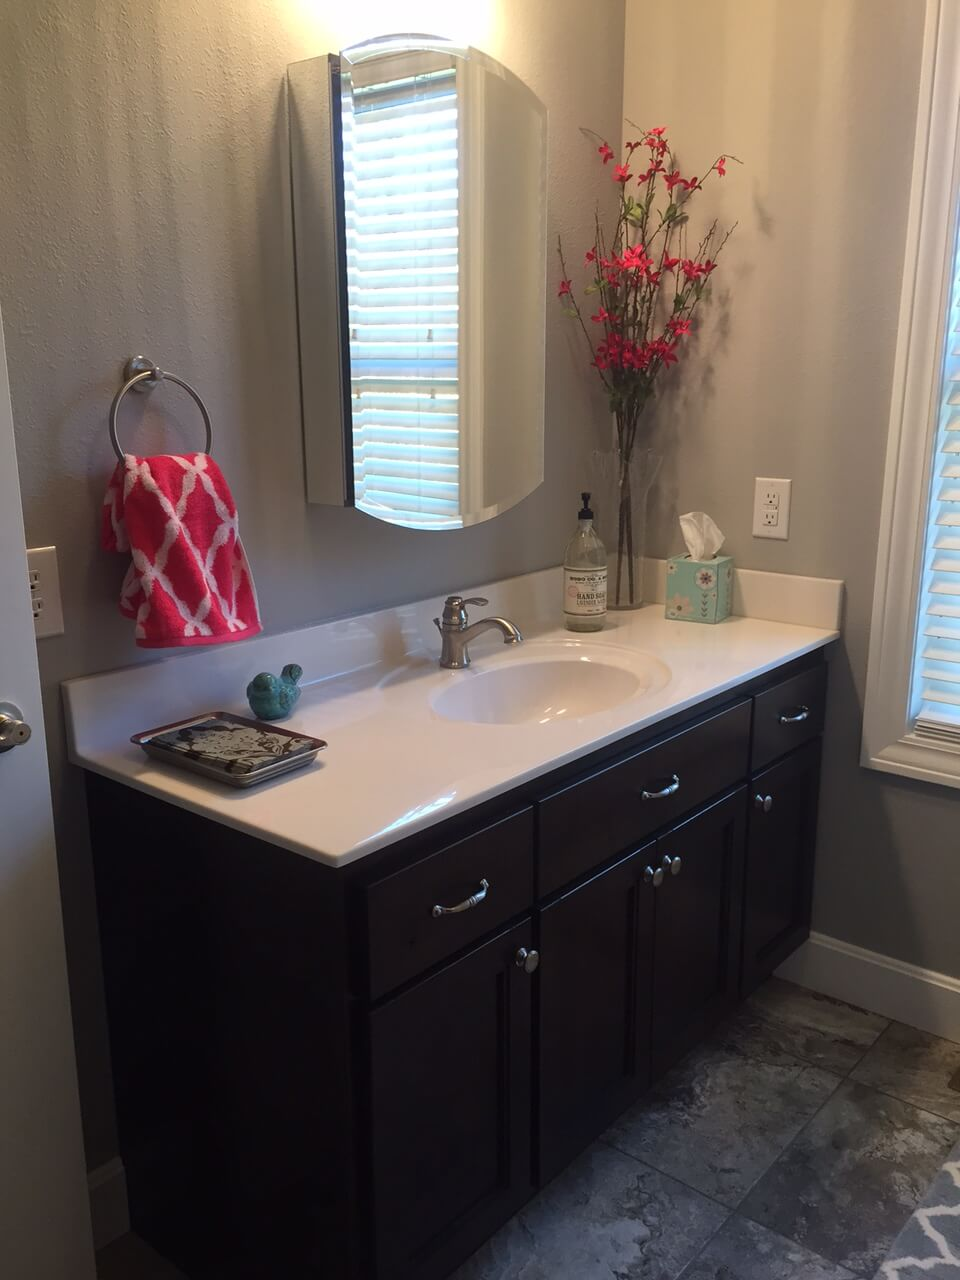 The Cabinets Plus Knotty Alder Bathroom